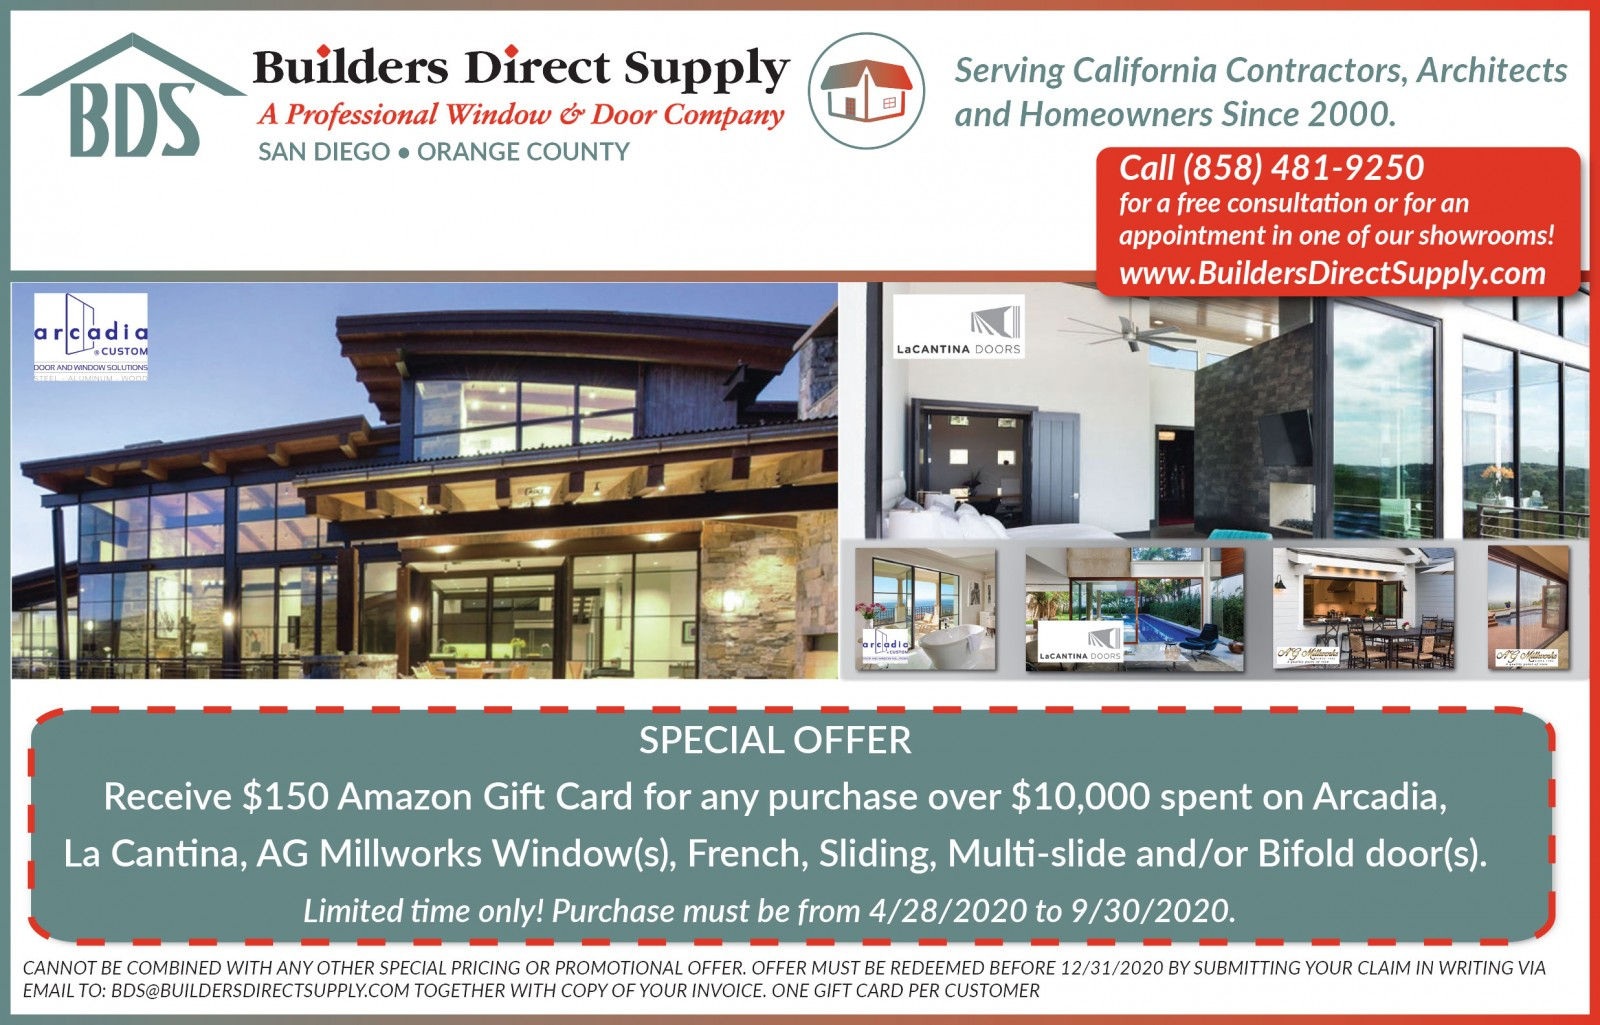 Receive $150 Amazon Gift Card for any purchase over $10,000 spent on Arcadia, La Cantina, AG Millworks Window(s), French, Sliding, Multi-slide and/or Bifold door(s).